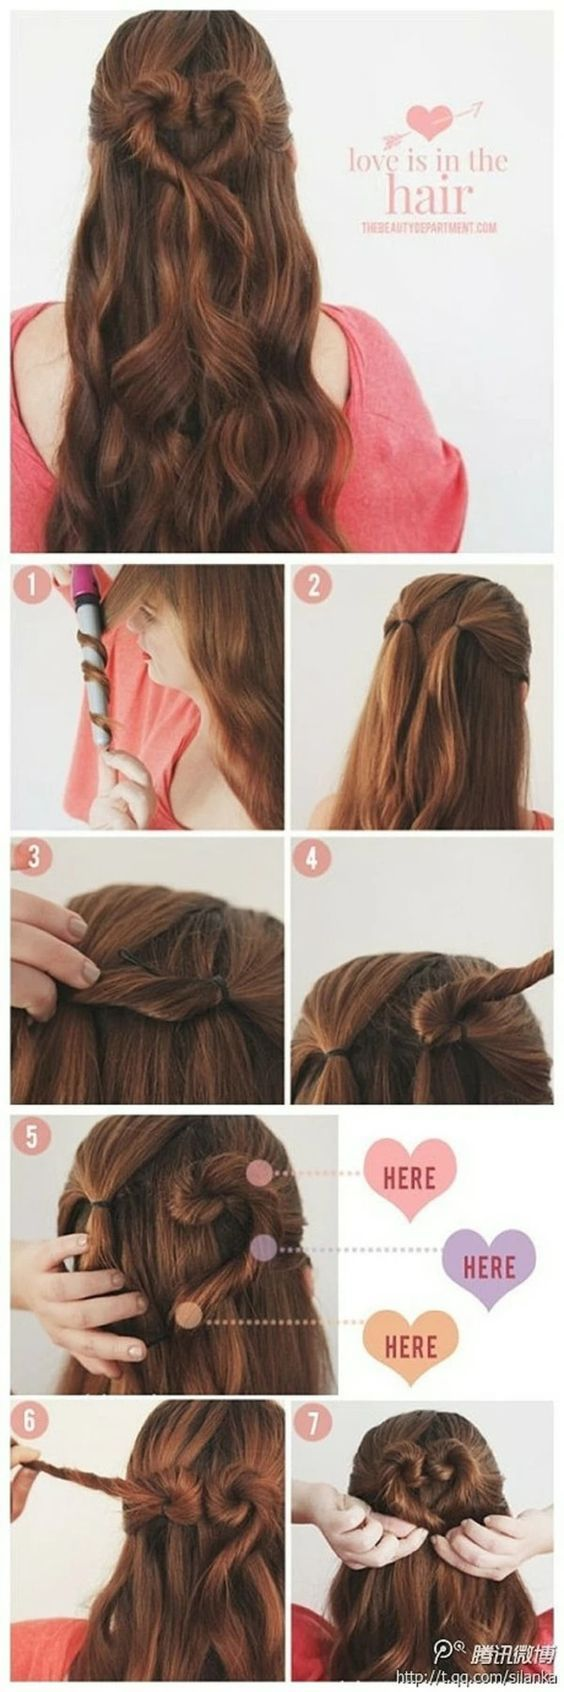 Outstanding 1000 Ideas About Diy Hairstyles On Pinterest Easy Diy Hairstyles For Men Maxibearus